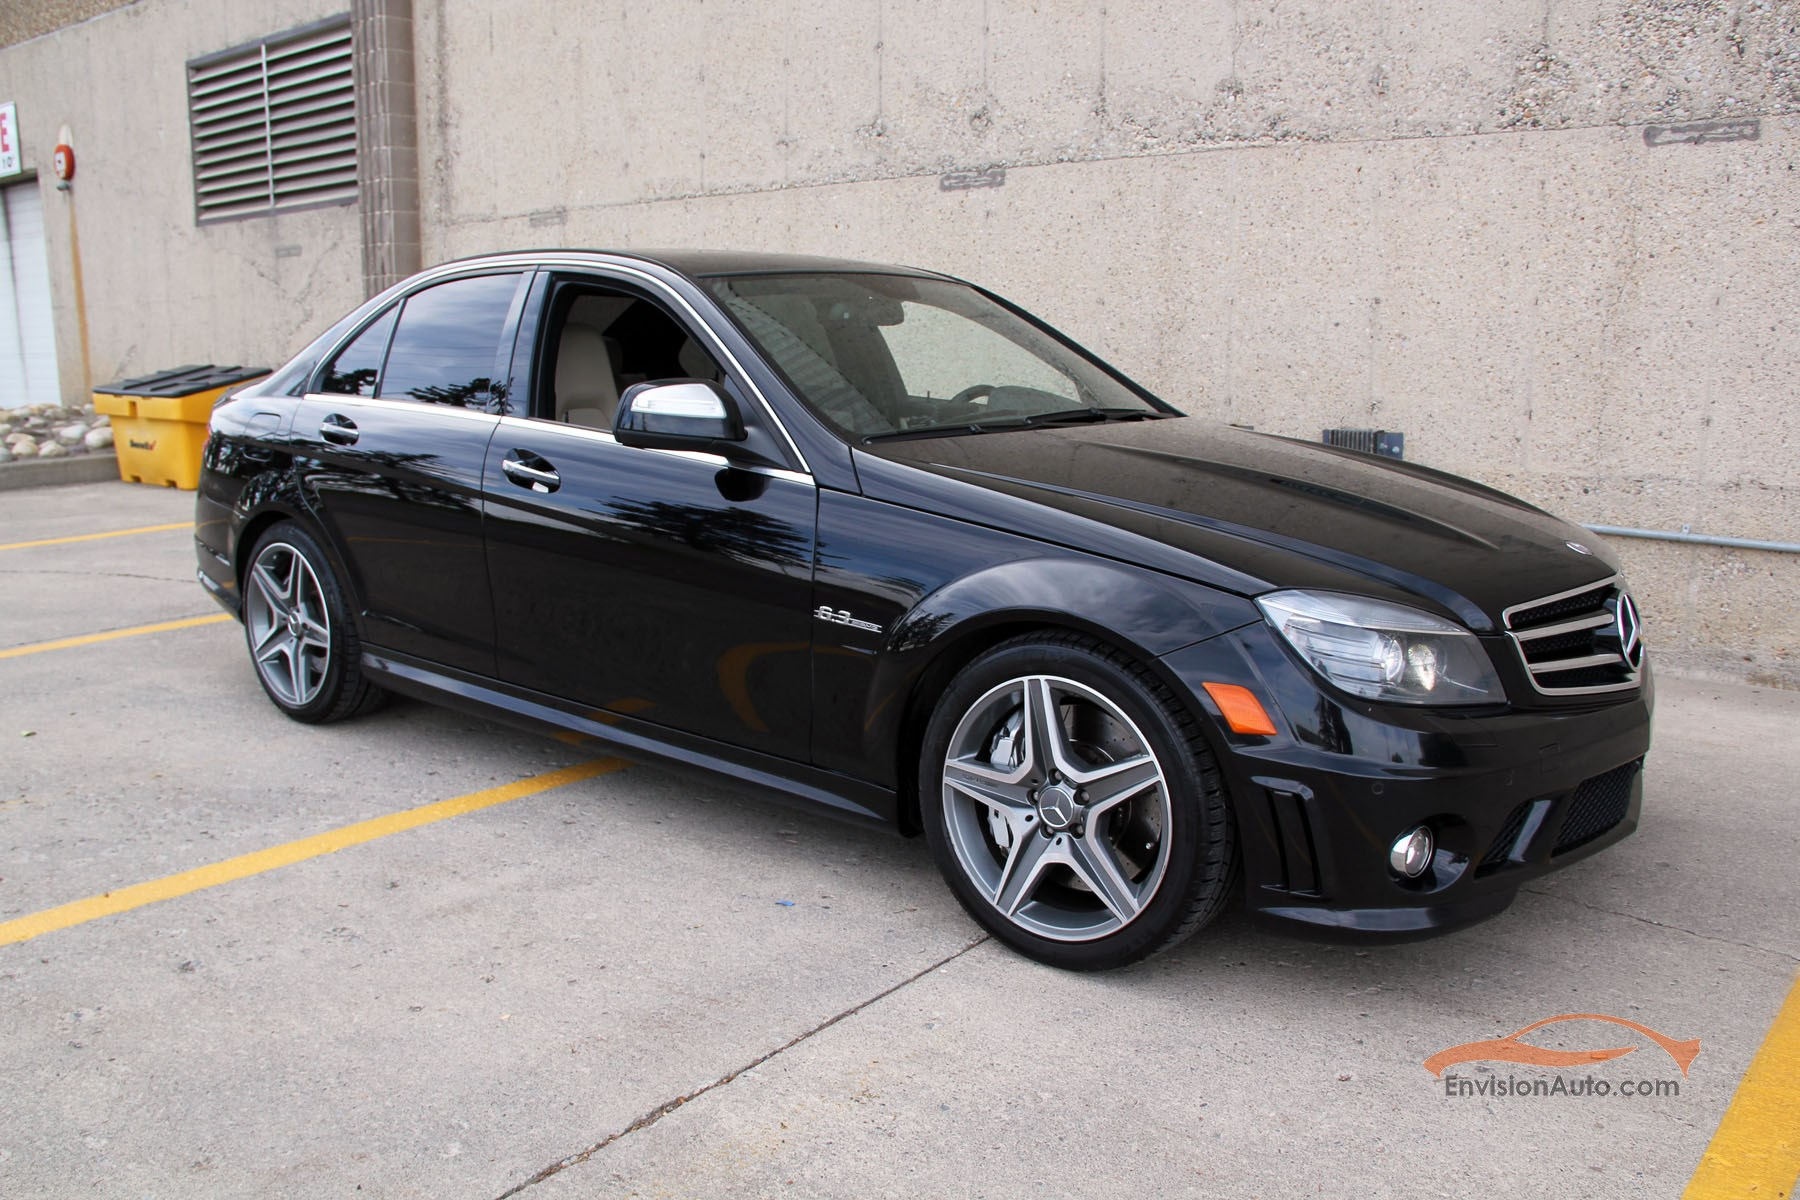 2009 mercedes benz c63 amg performance pkg envision auto for Mercedes benz amg c63 price